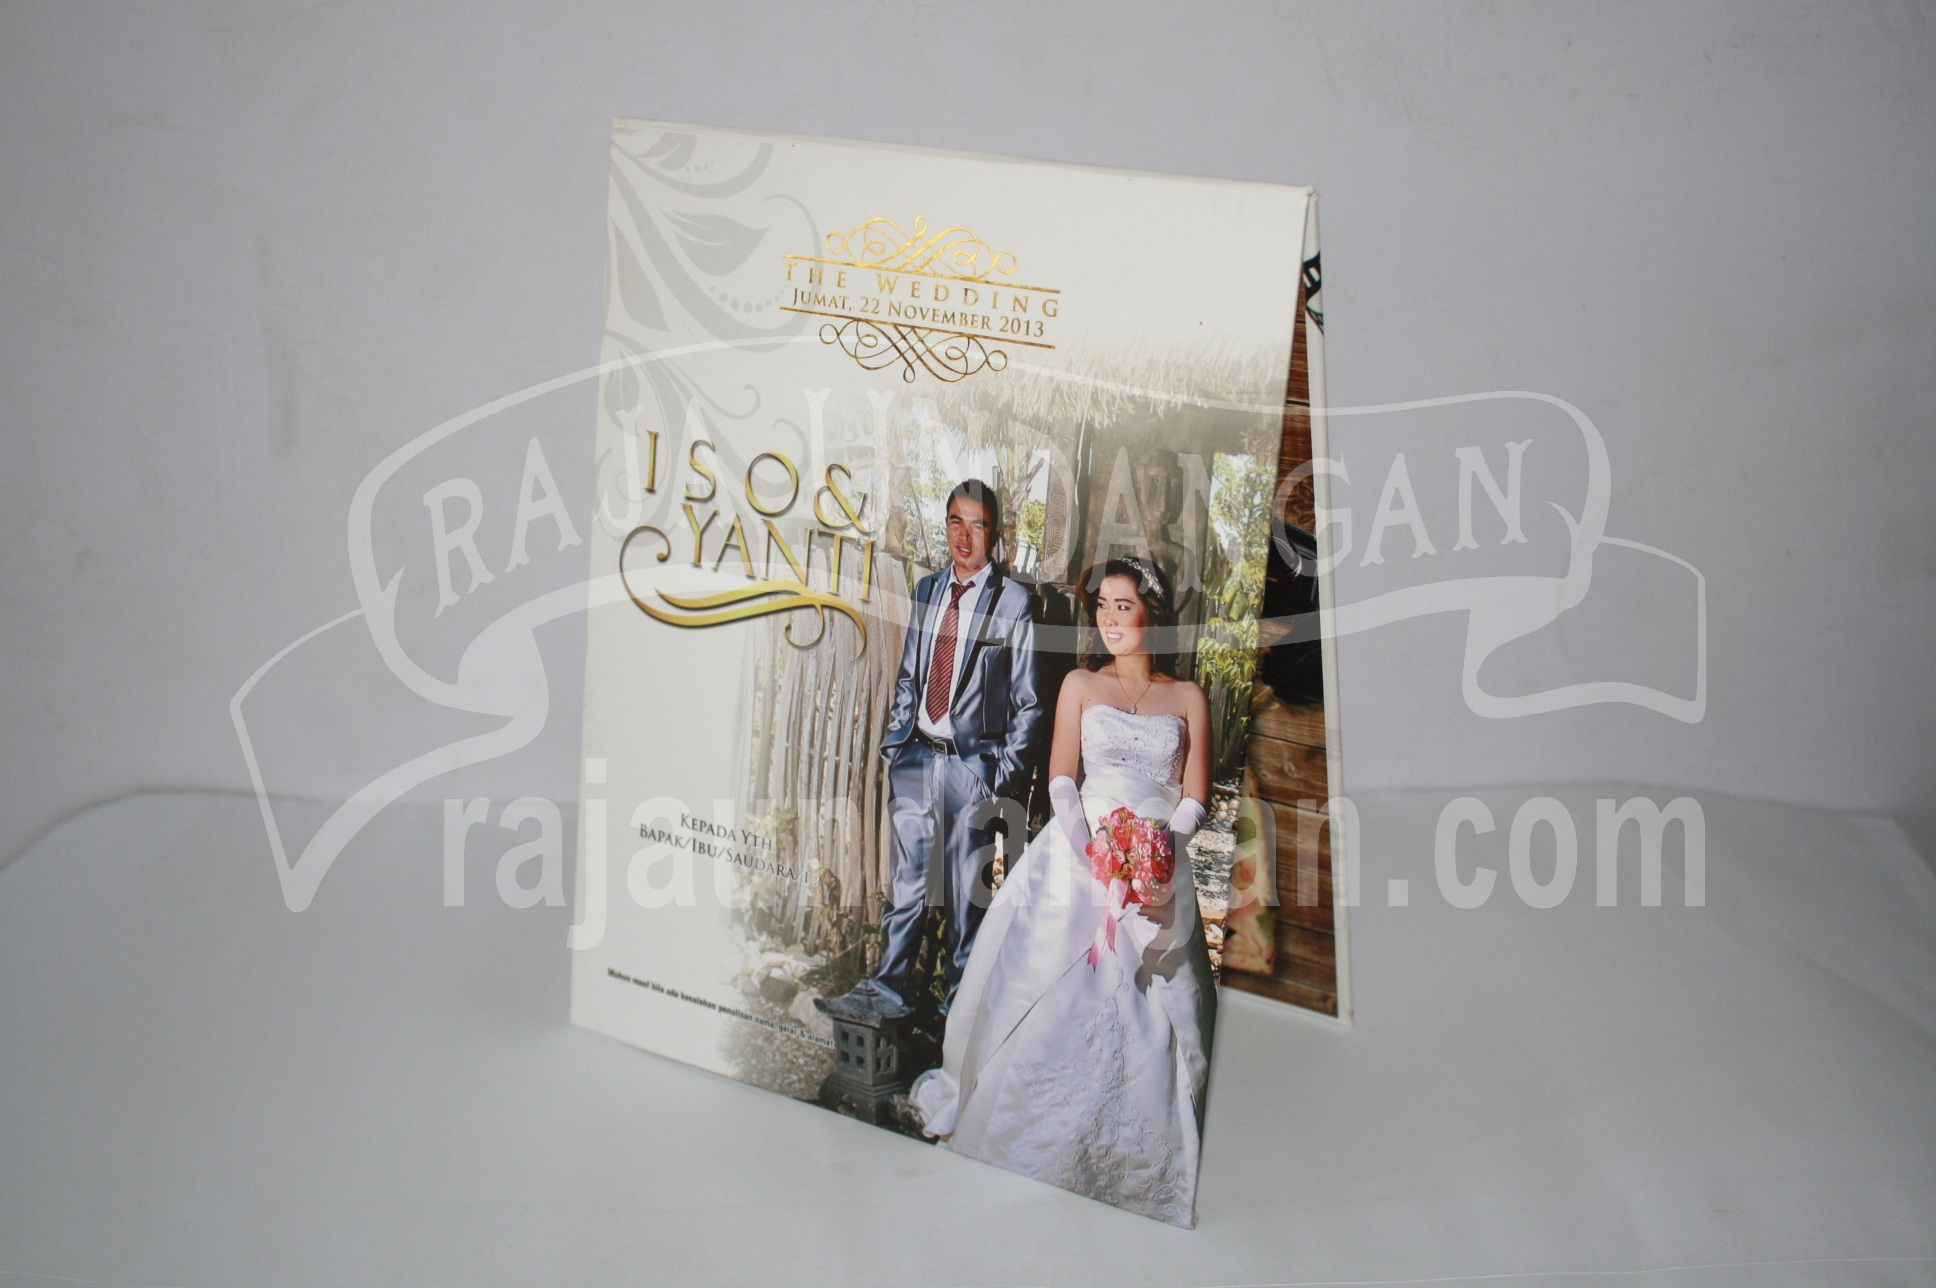 Undangan Pernikahan Hardcover Pop Up Iso dan Yanti EDC 45 - Pesan Wedding Invitations Online di Dupak